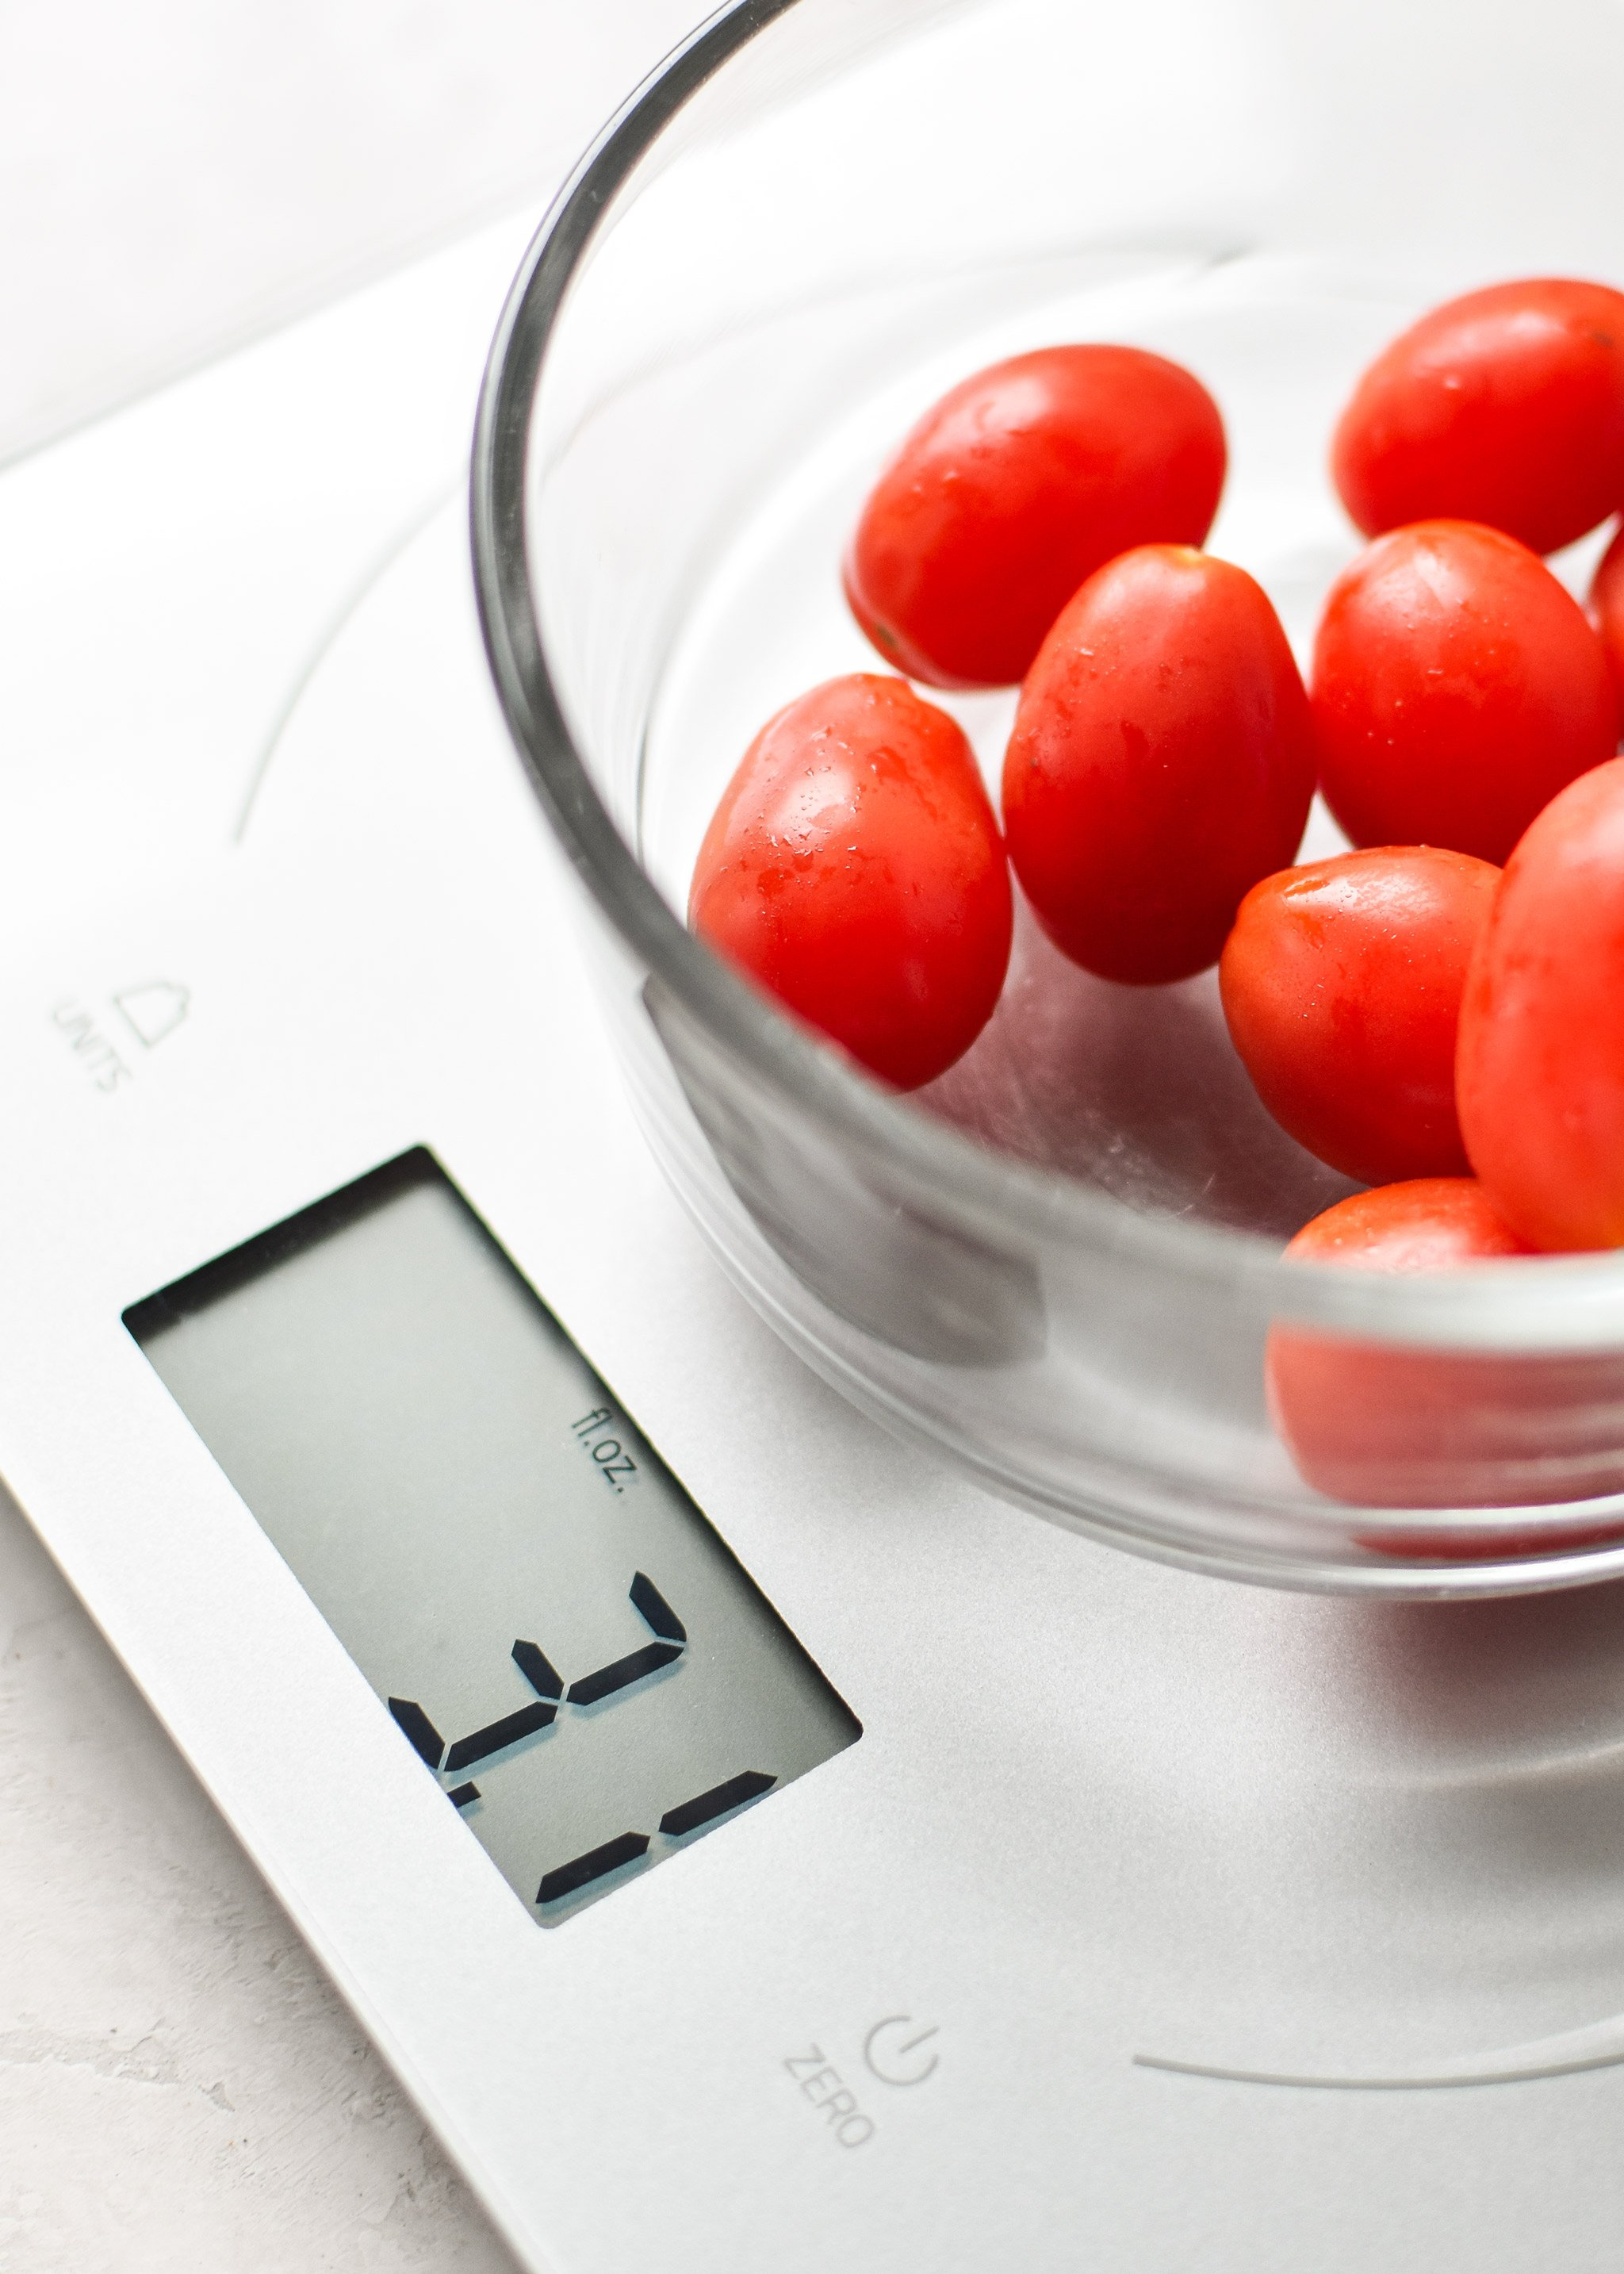 Portioning grape tomatoes for meal prep using a kitchen scale.